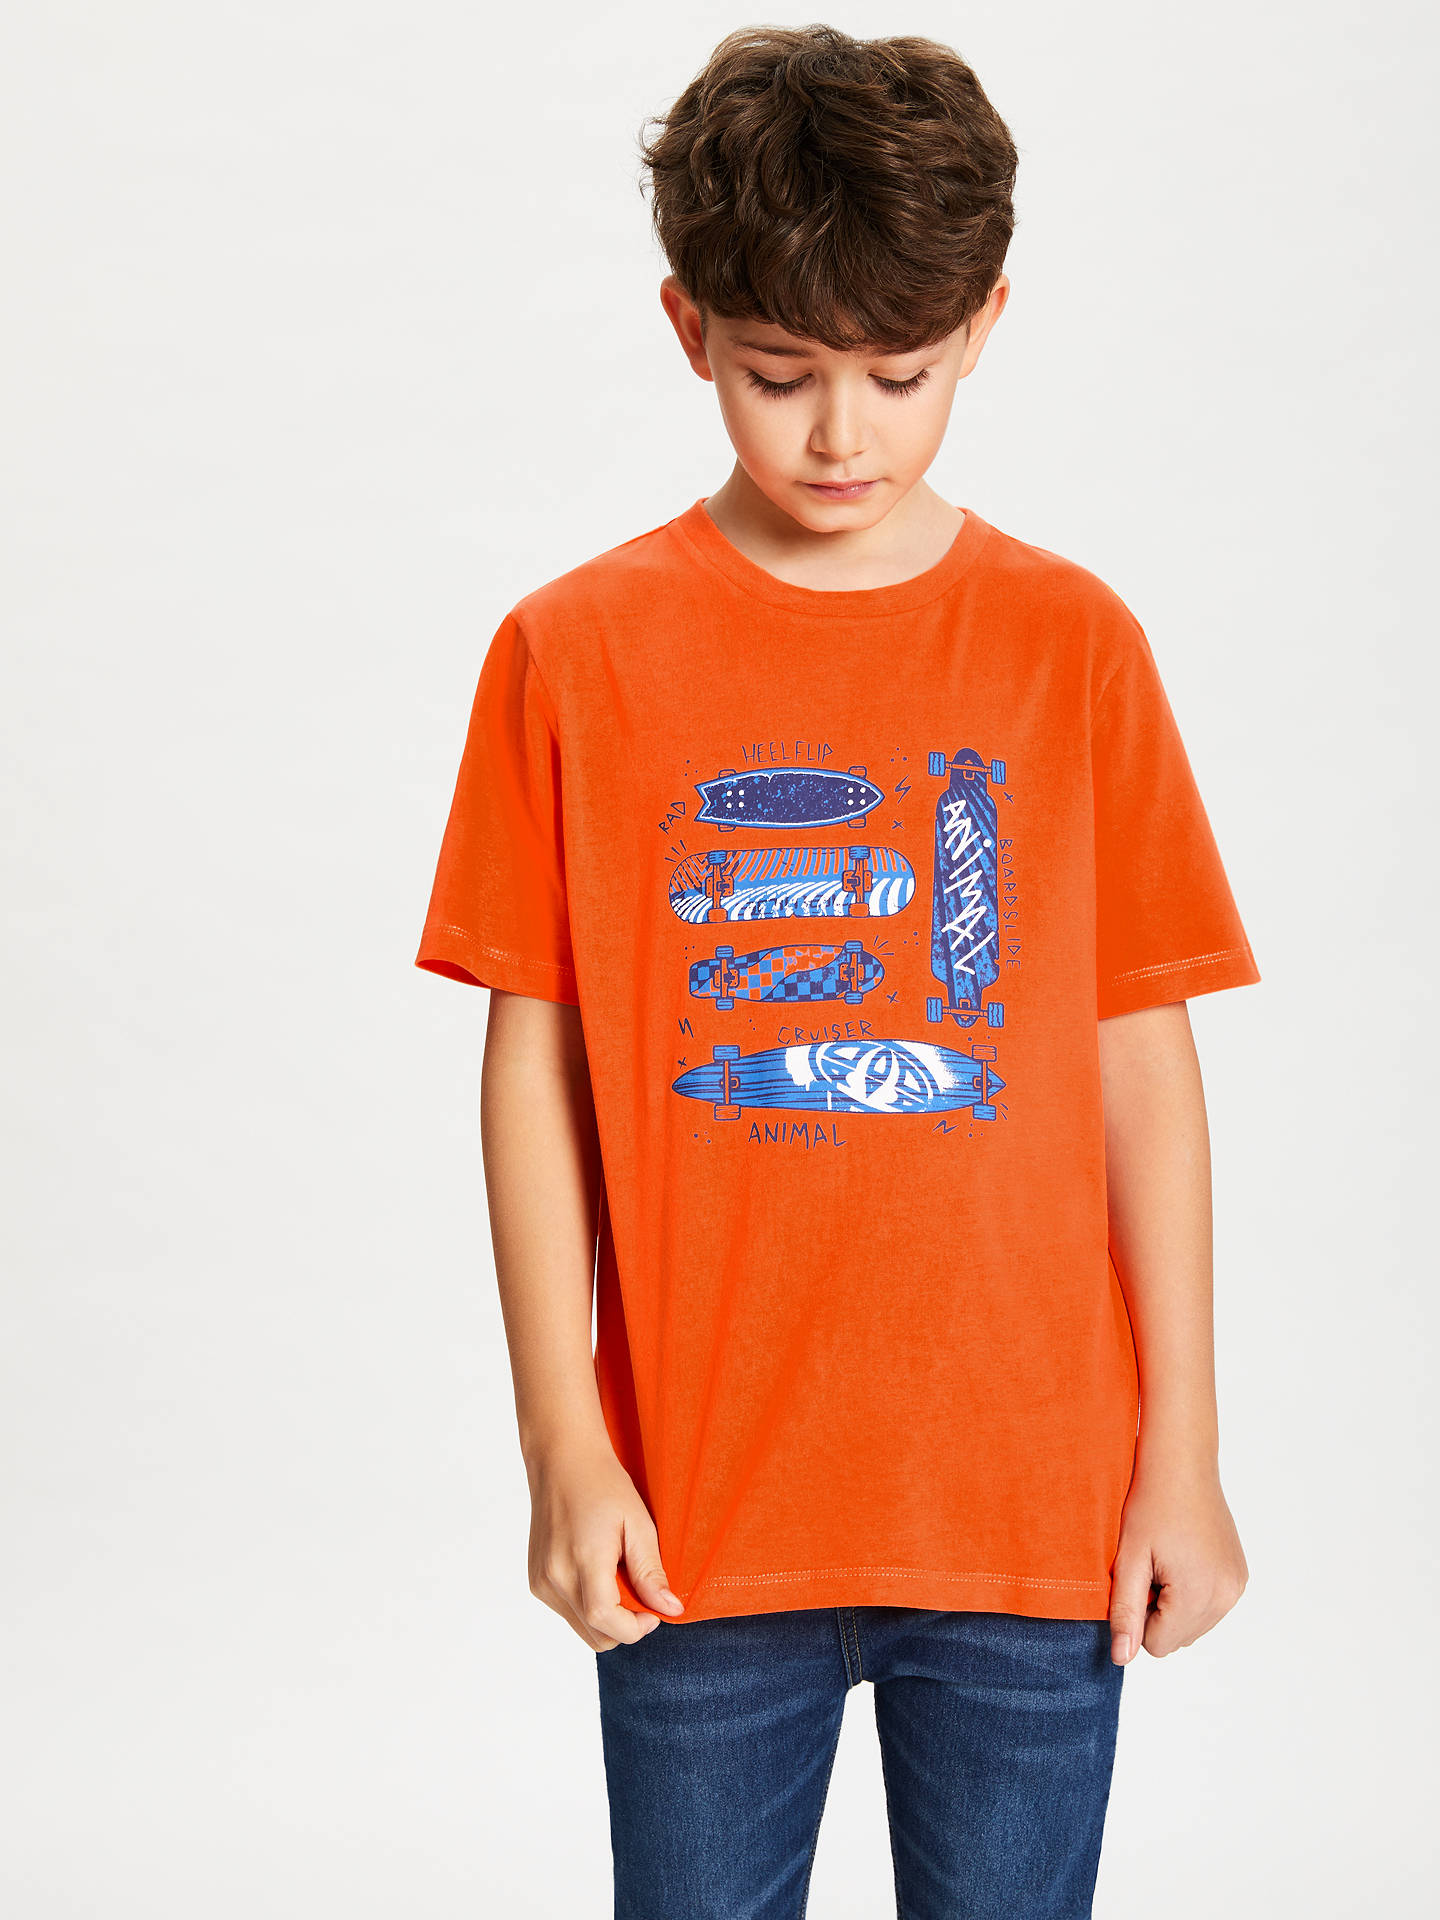 2cdd1a6080af Animal Boys' Boardslide Graphic Print T-Shirt, Orange at John Lewis ...